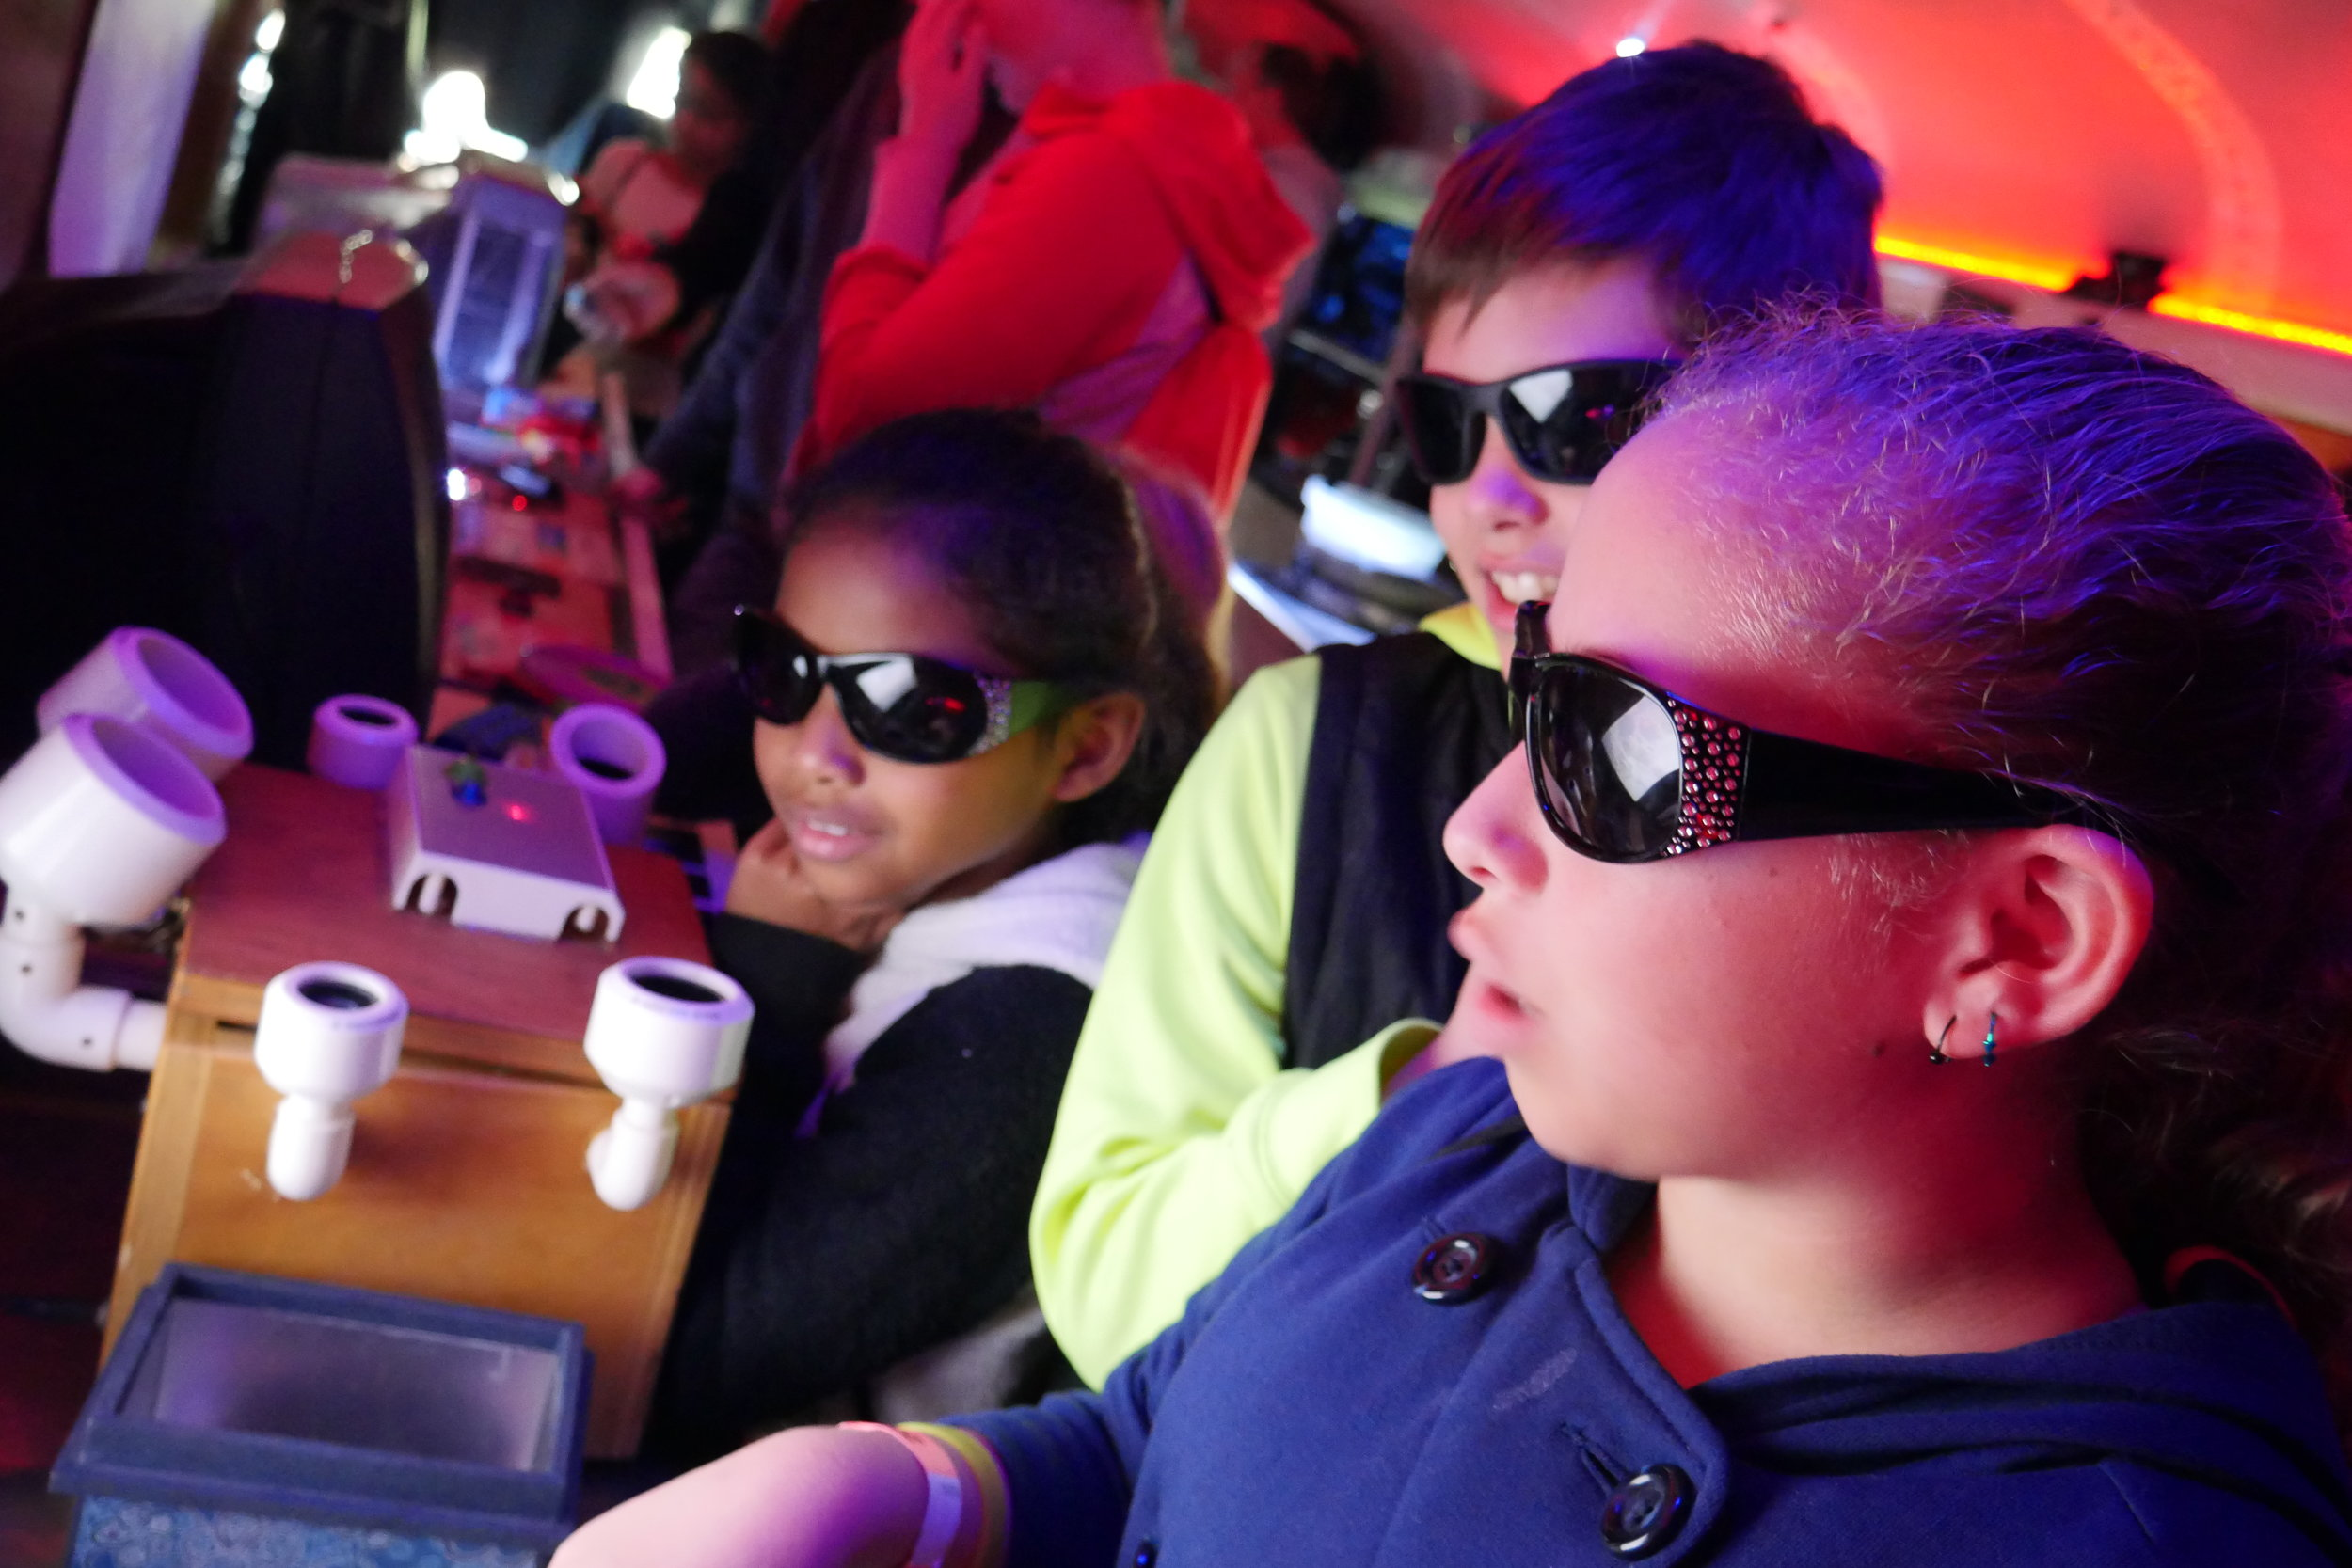 Inside the Physics Bus, a group of children put on special glasses and watch a movie through a warped television display. (Nicholas Serpa/DD)